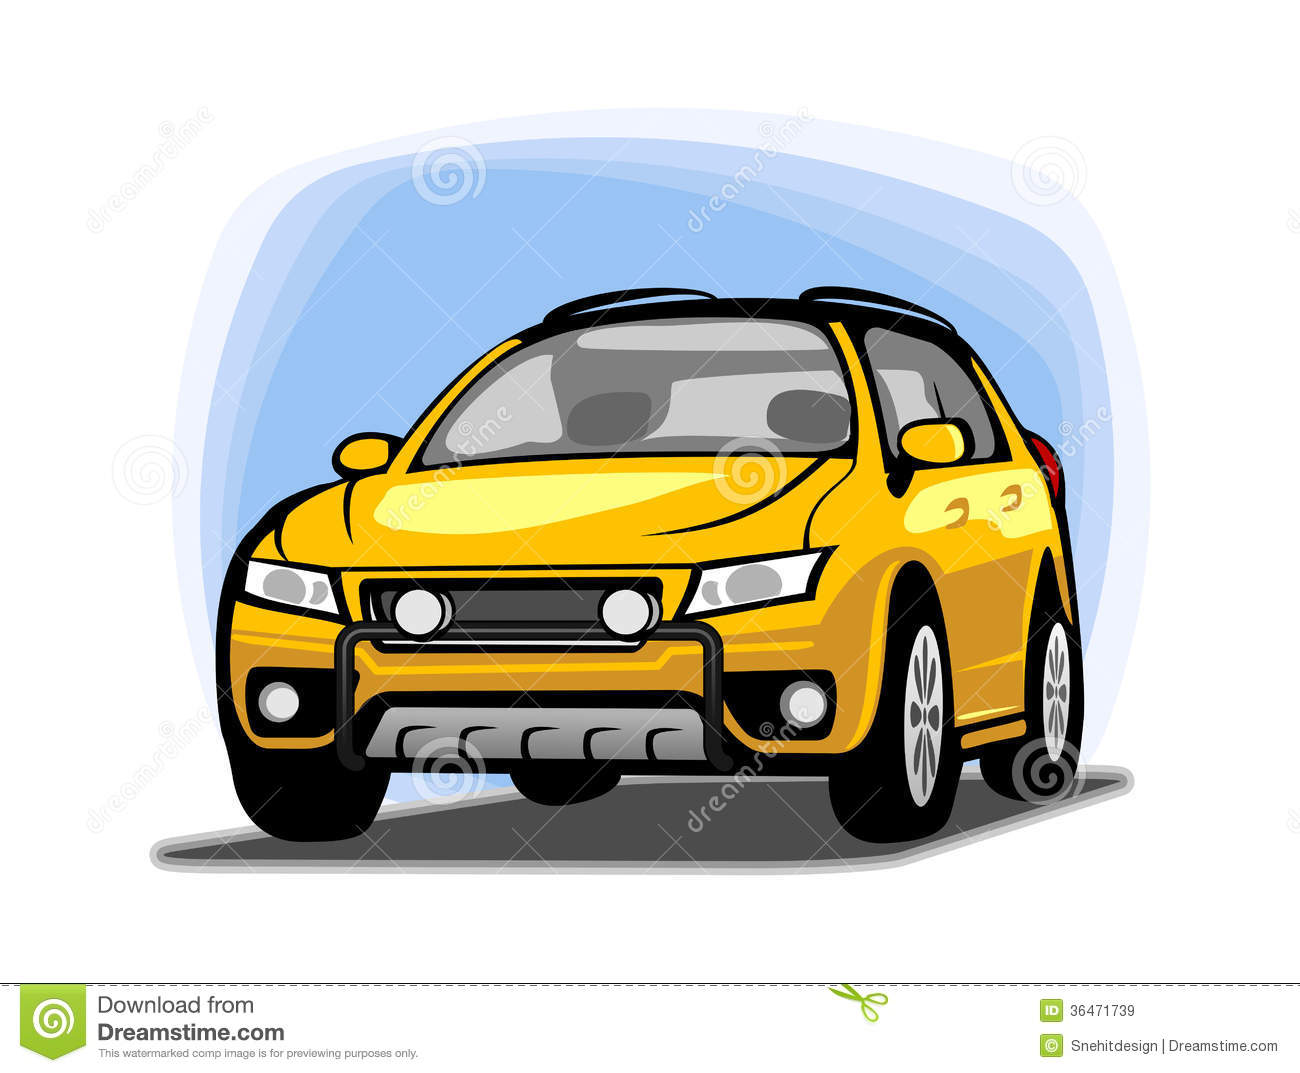 Car clipart stock illustration illustration of company 36471739 - Clipart voiture ...